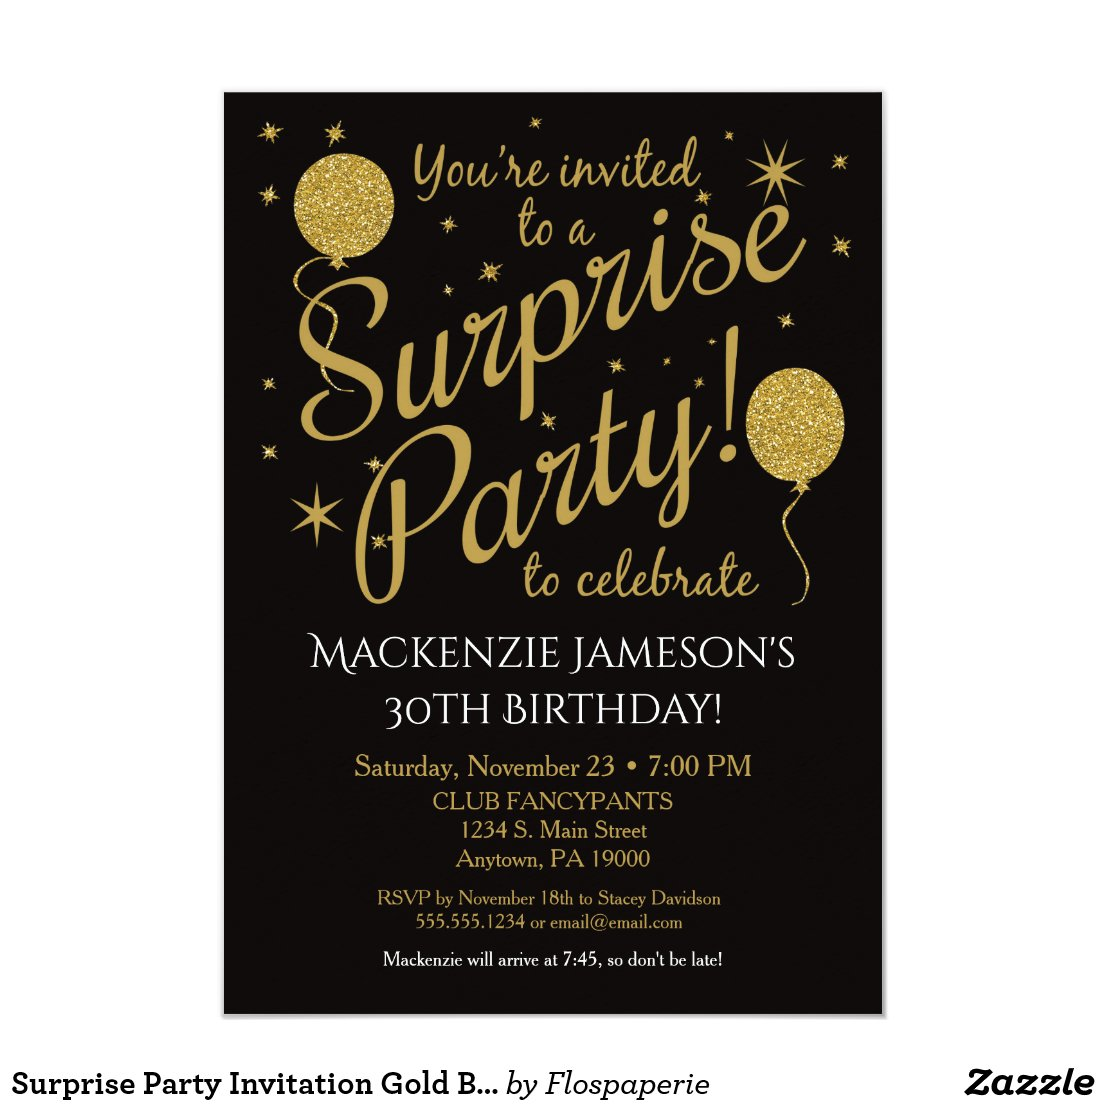 Surprise Party Invitation Gold Balloon Birthday